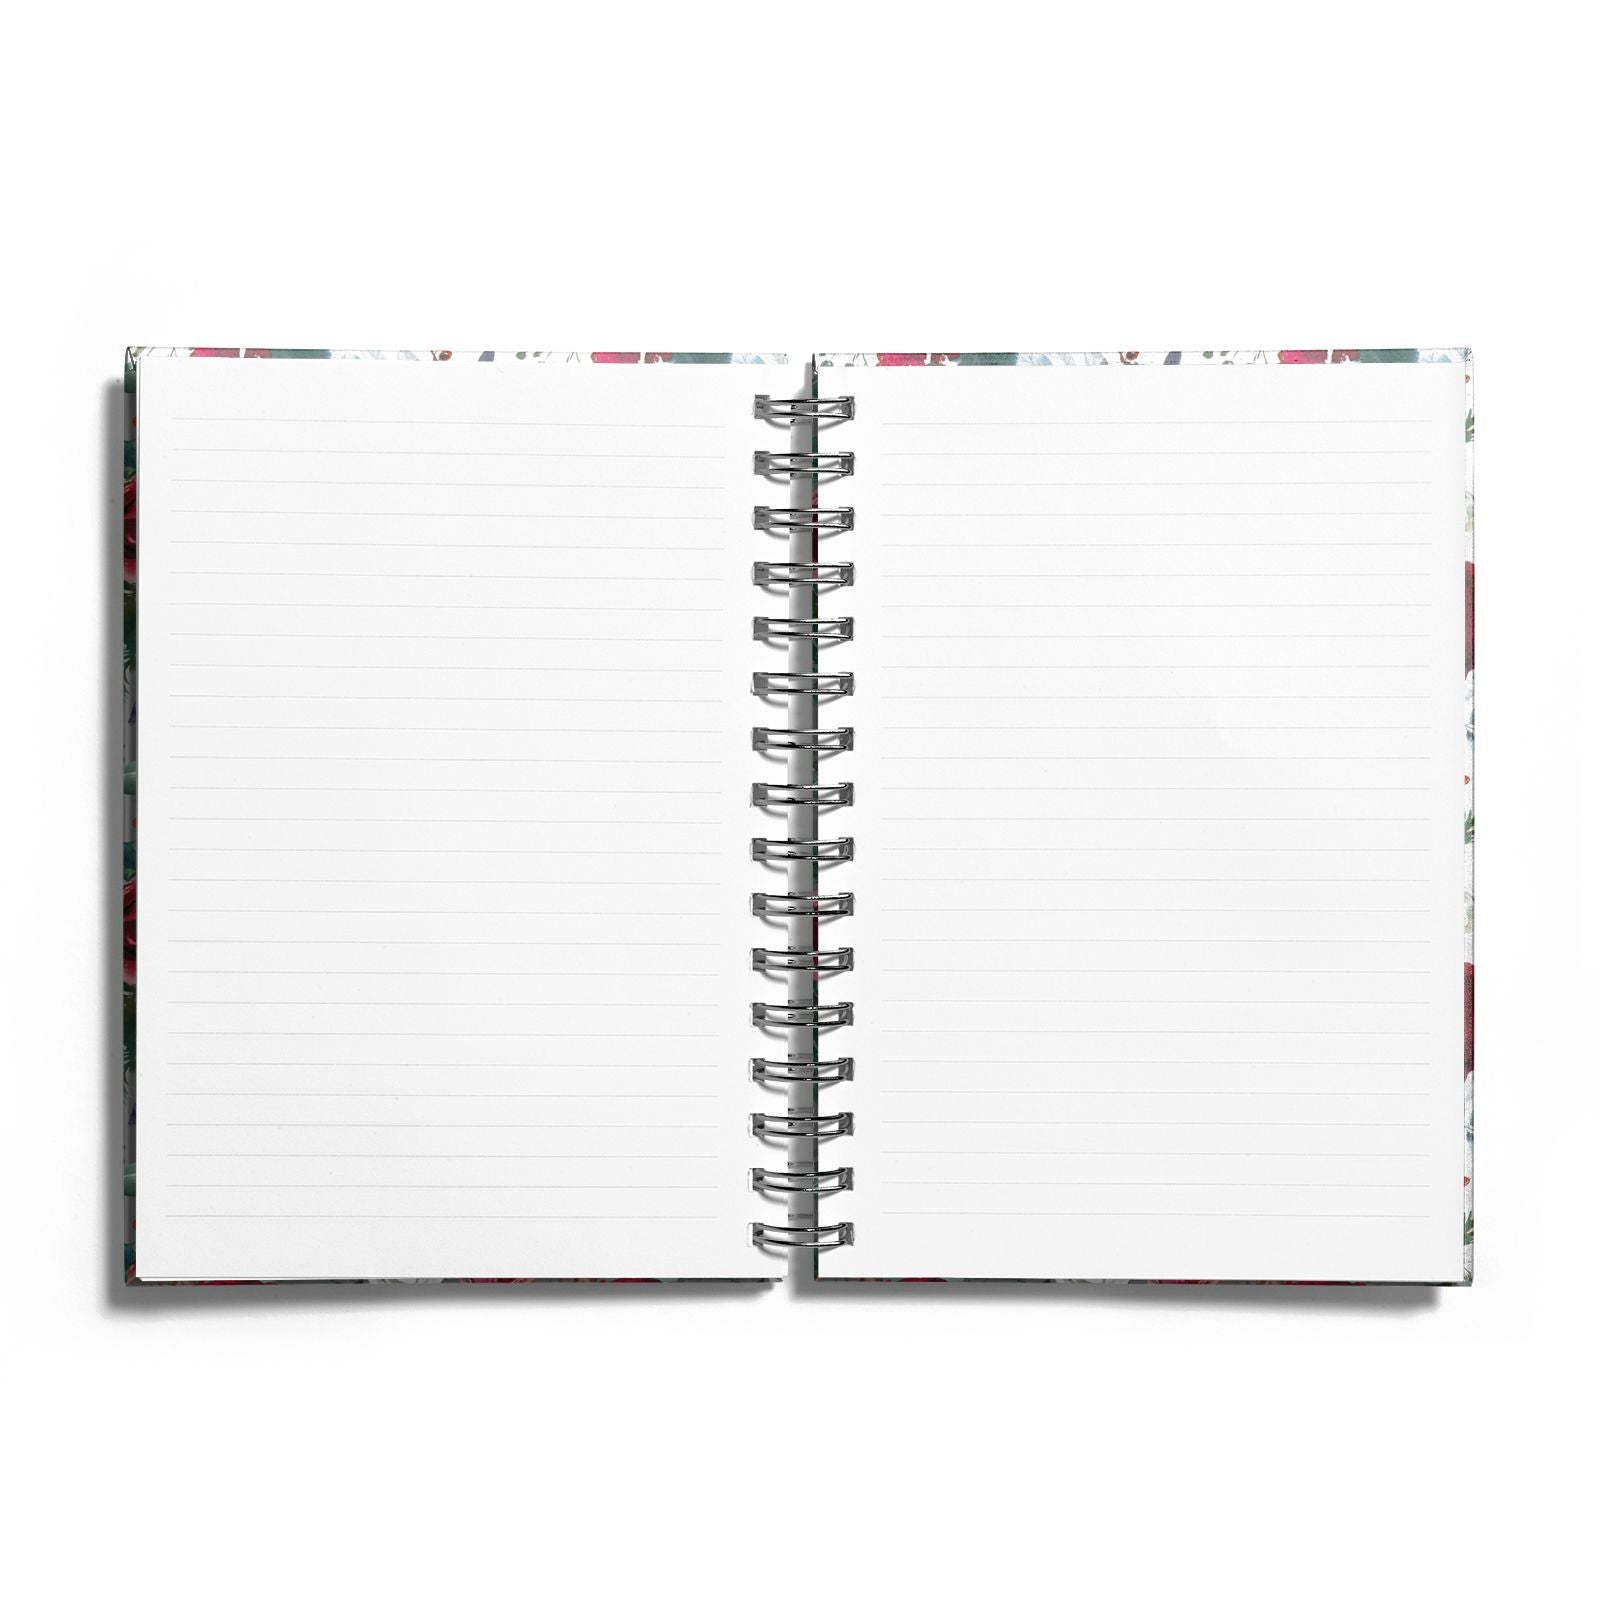 Christmas Floral Pattern Notebook with Silver Coil and Lined Paper